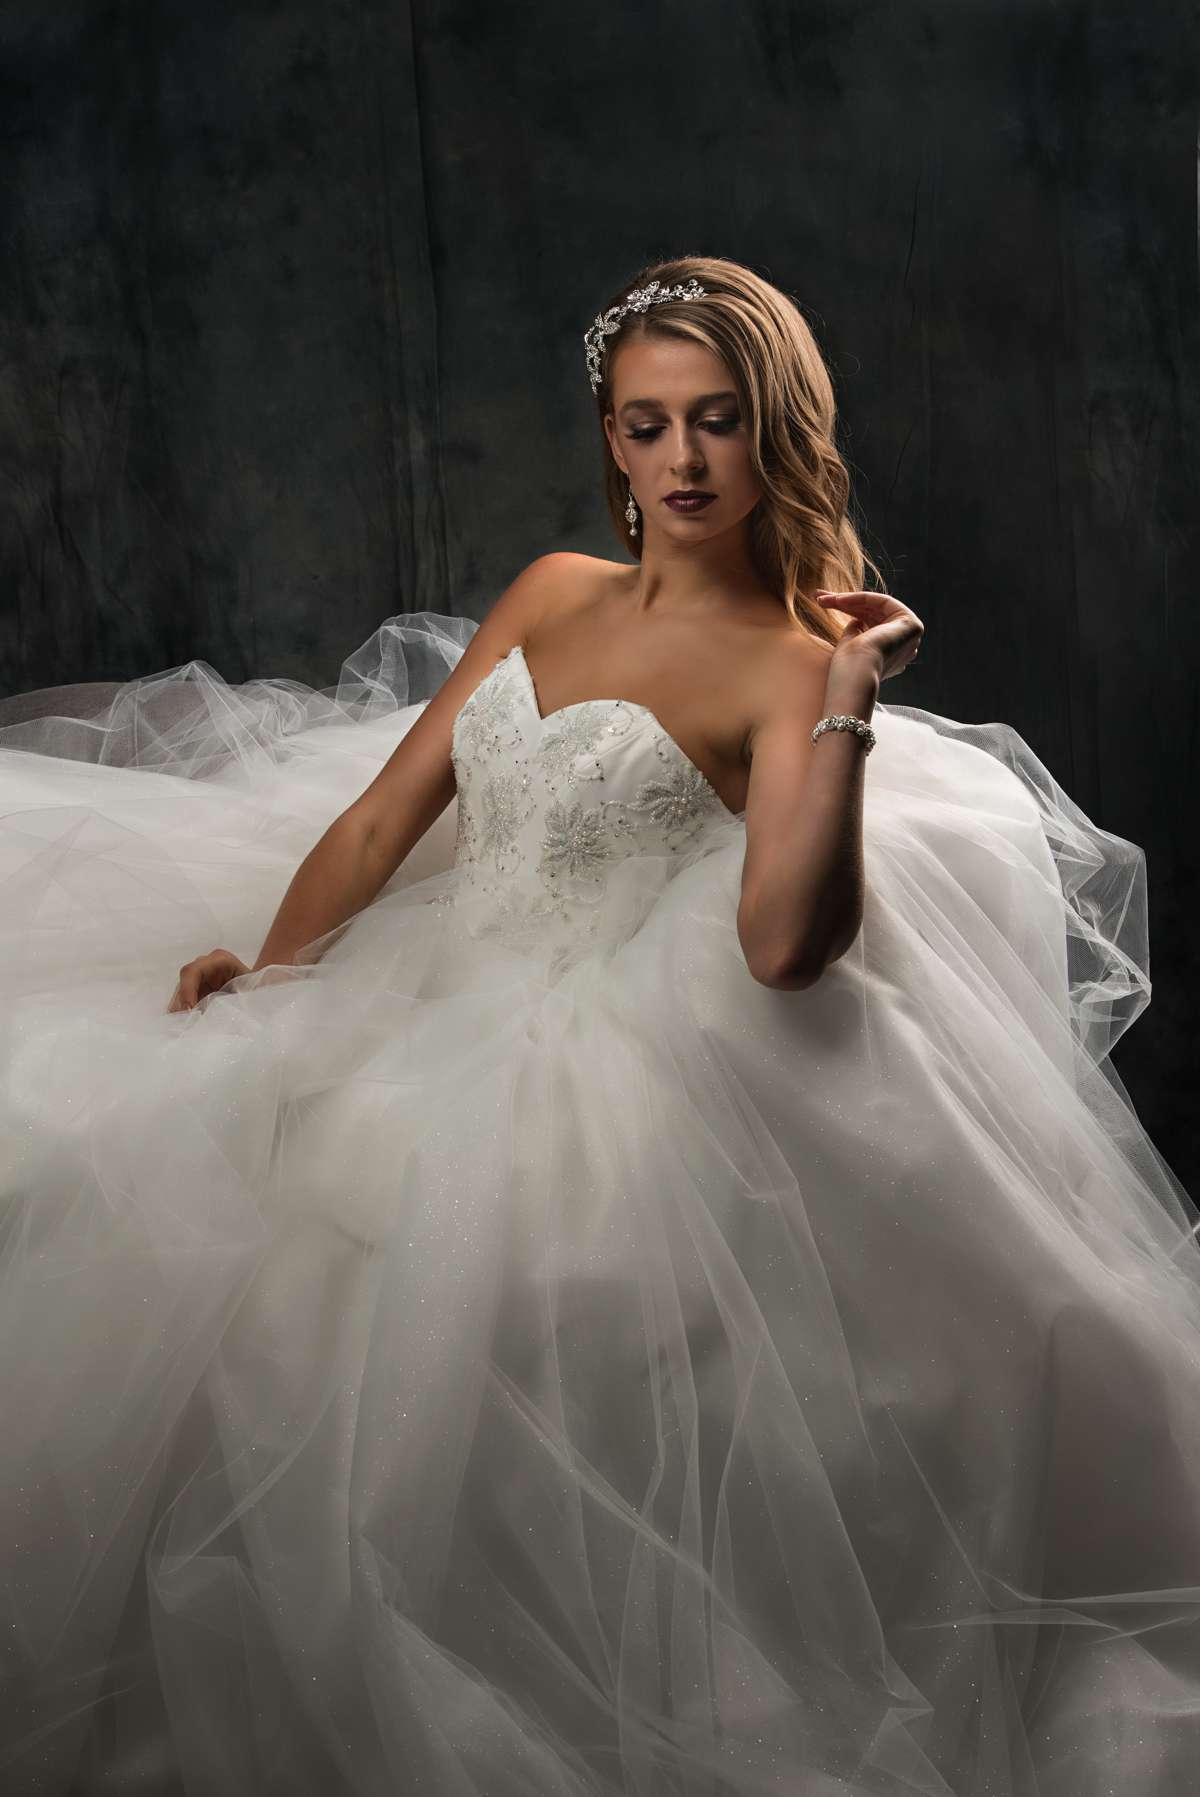 Glamorous Gowns From Hollywood Dreams